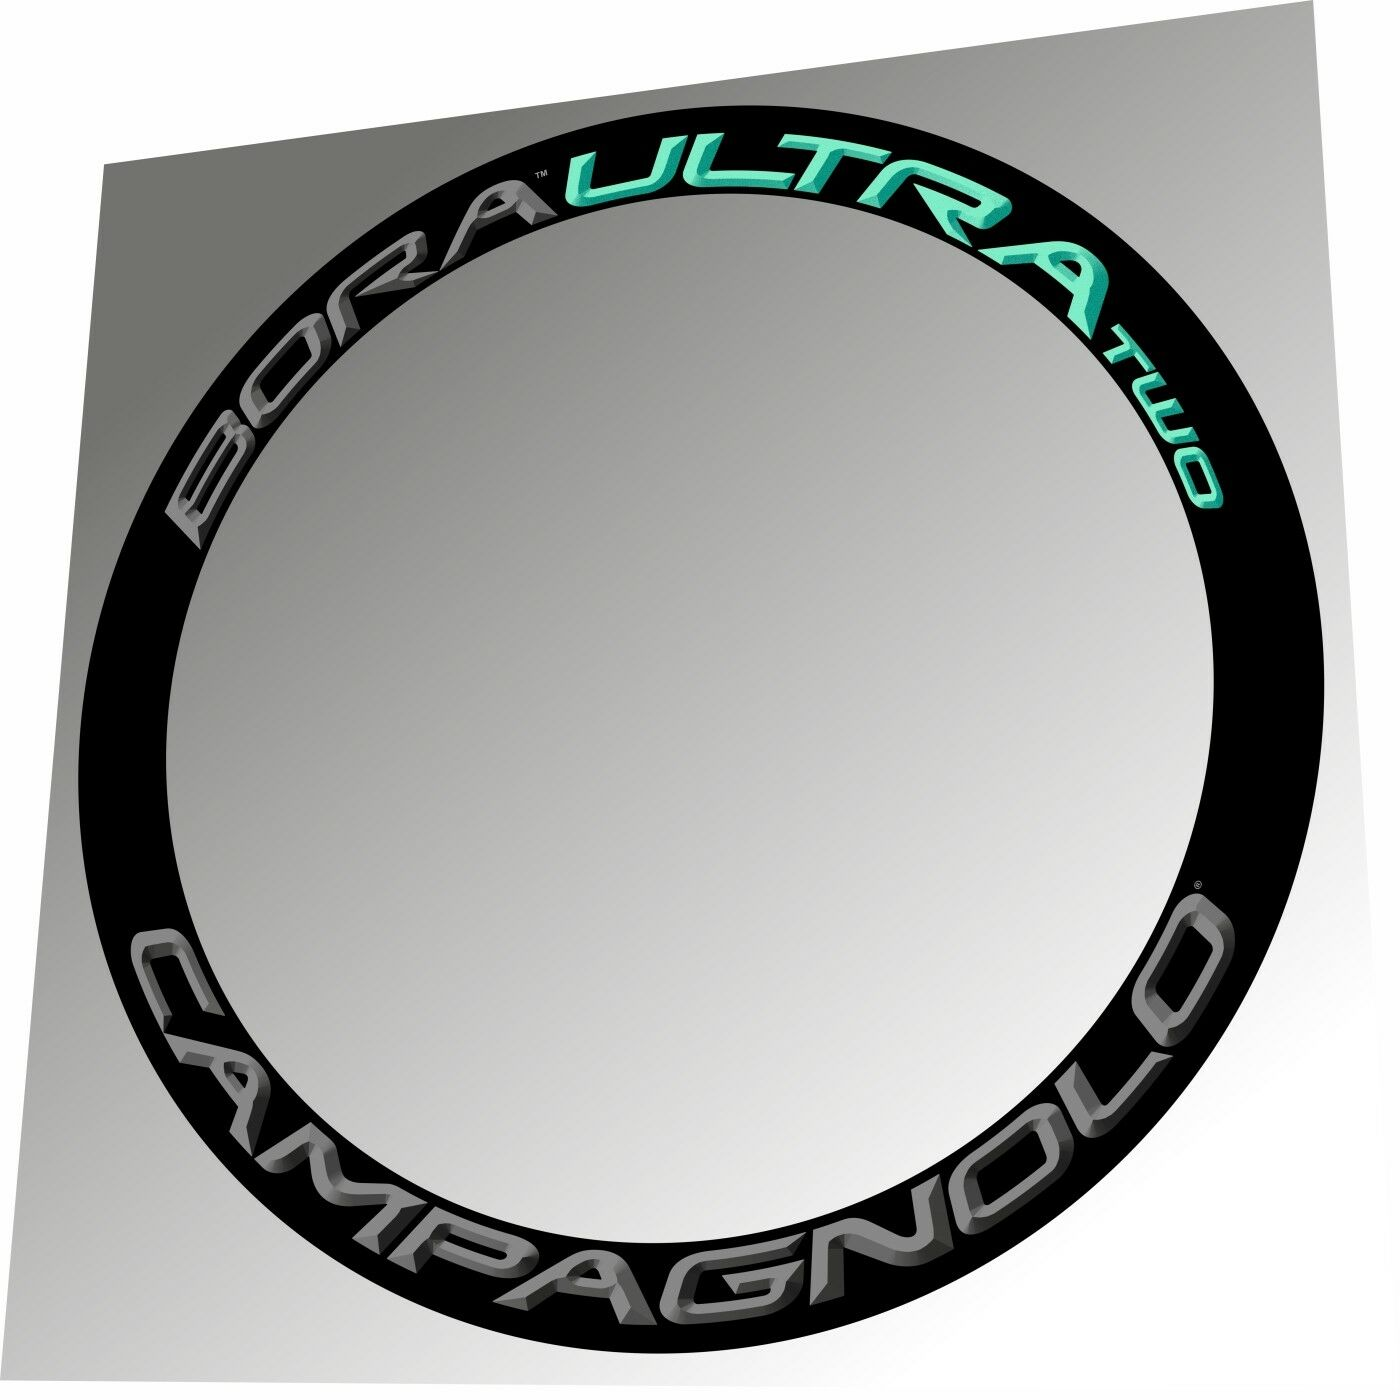 CAMPAGNOLO BORA ULTRA TWO DARK   CELESTE 3D DESIGN RIM DECAL SET FOR 2 RIMS